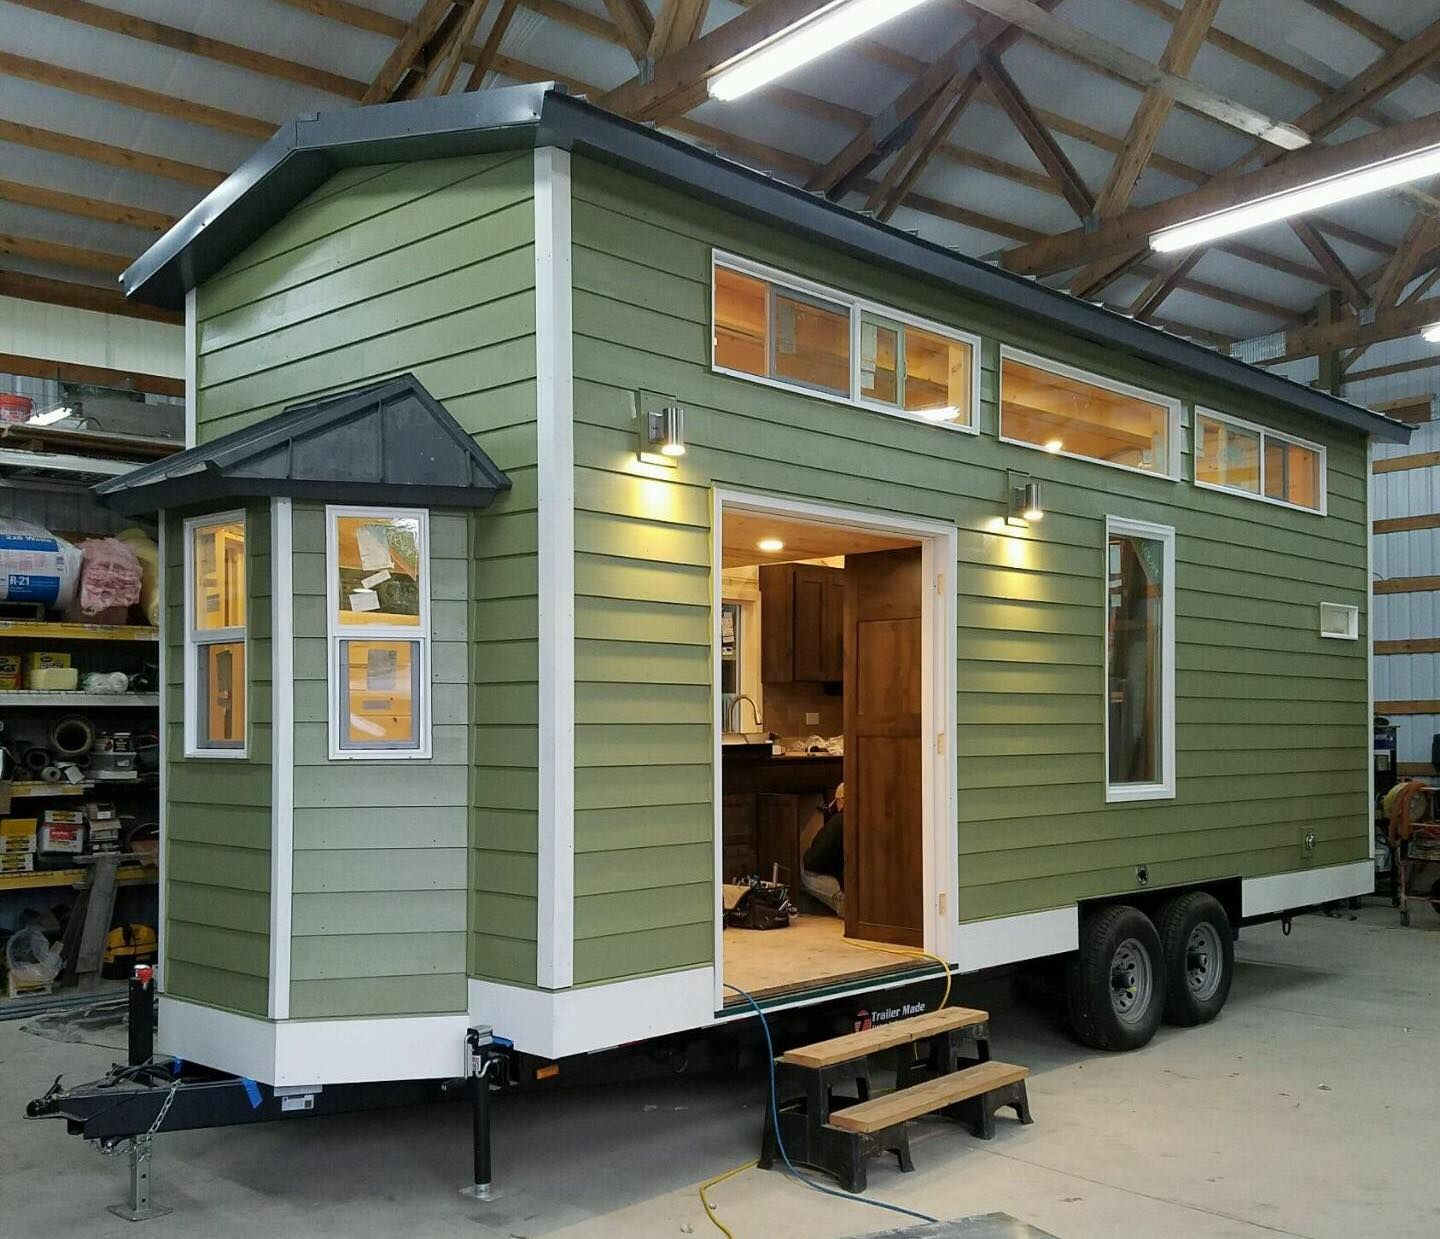 Tiny House Town A Home Blog Sharing Beautiful Tiny Homes And Houses Usually Under 500 Square Feet Tiny House Listings Tiny House Towns Tiny House